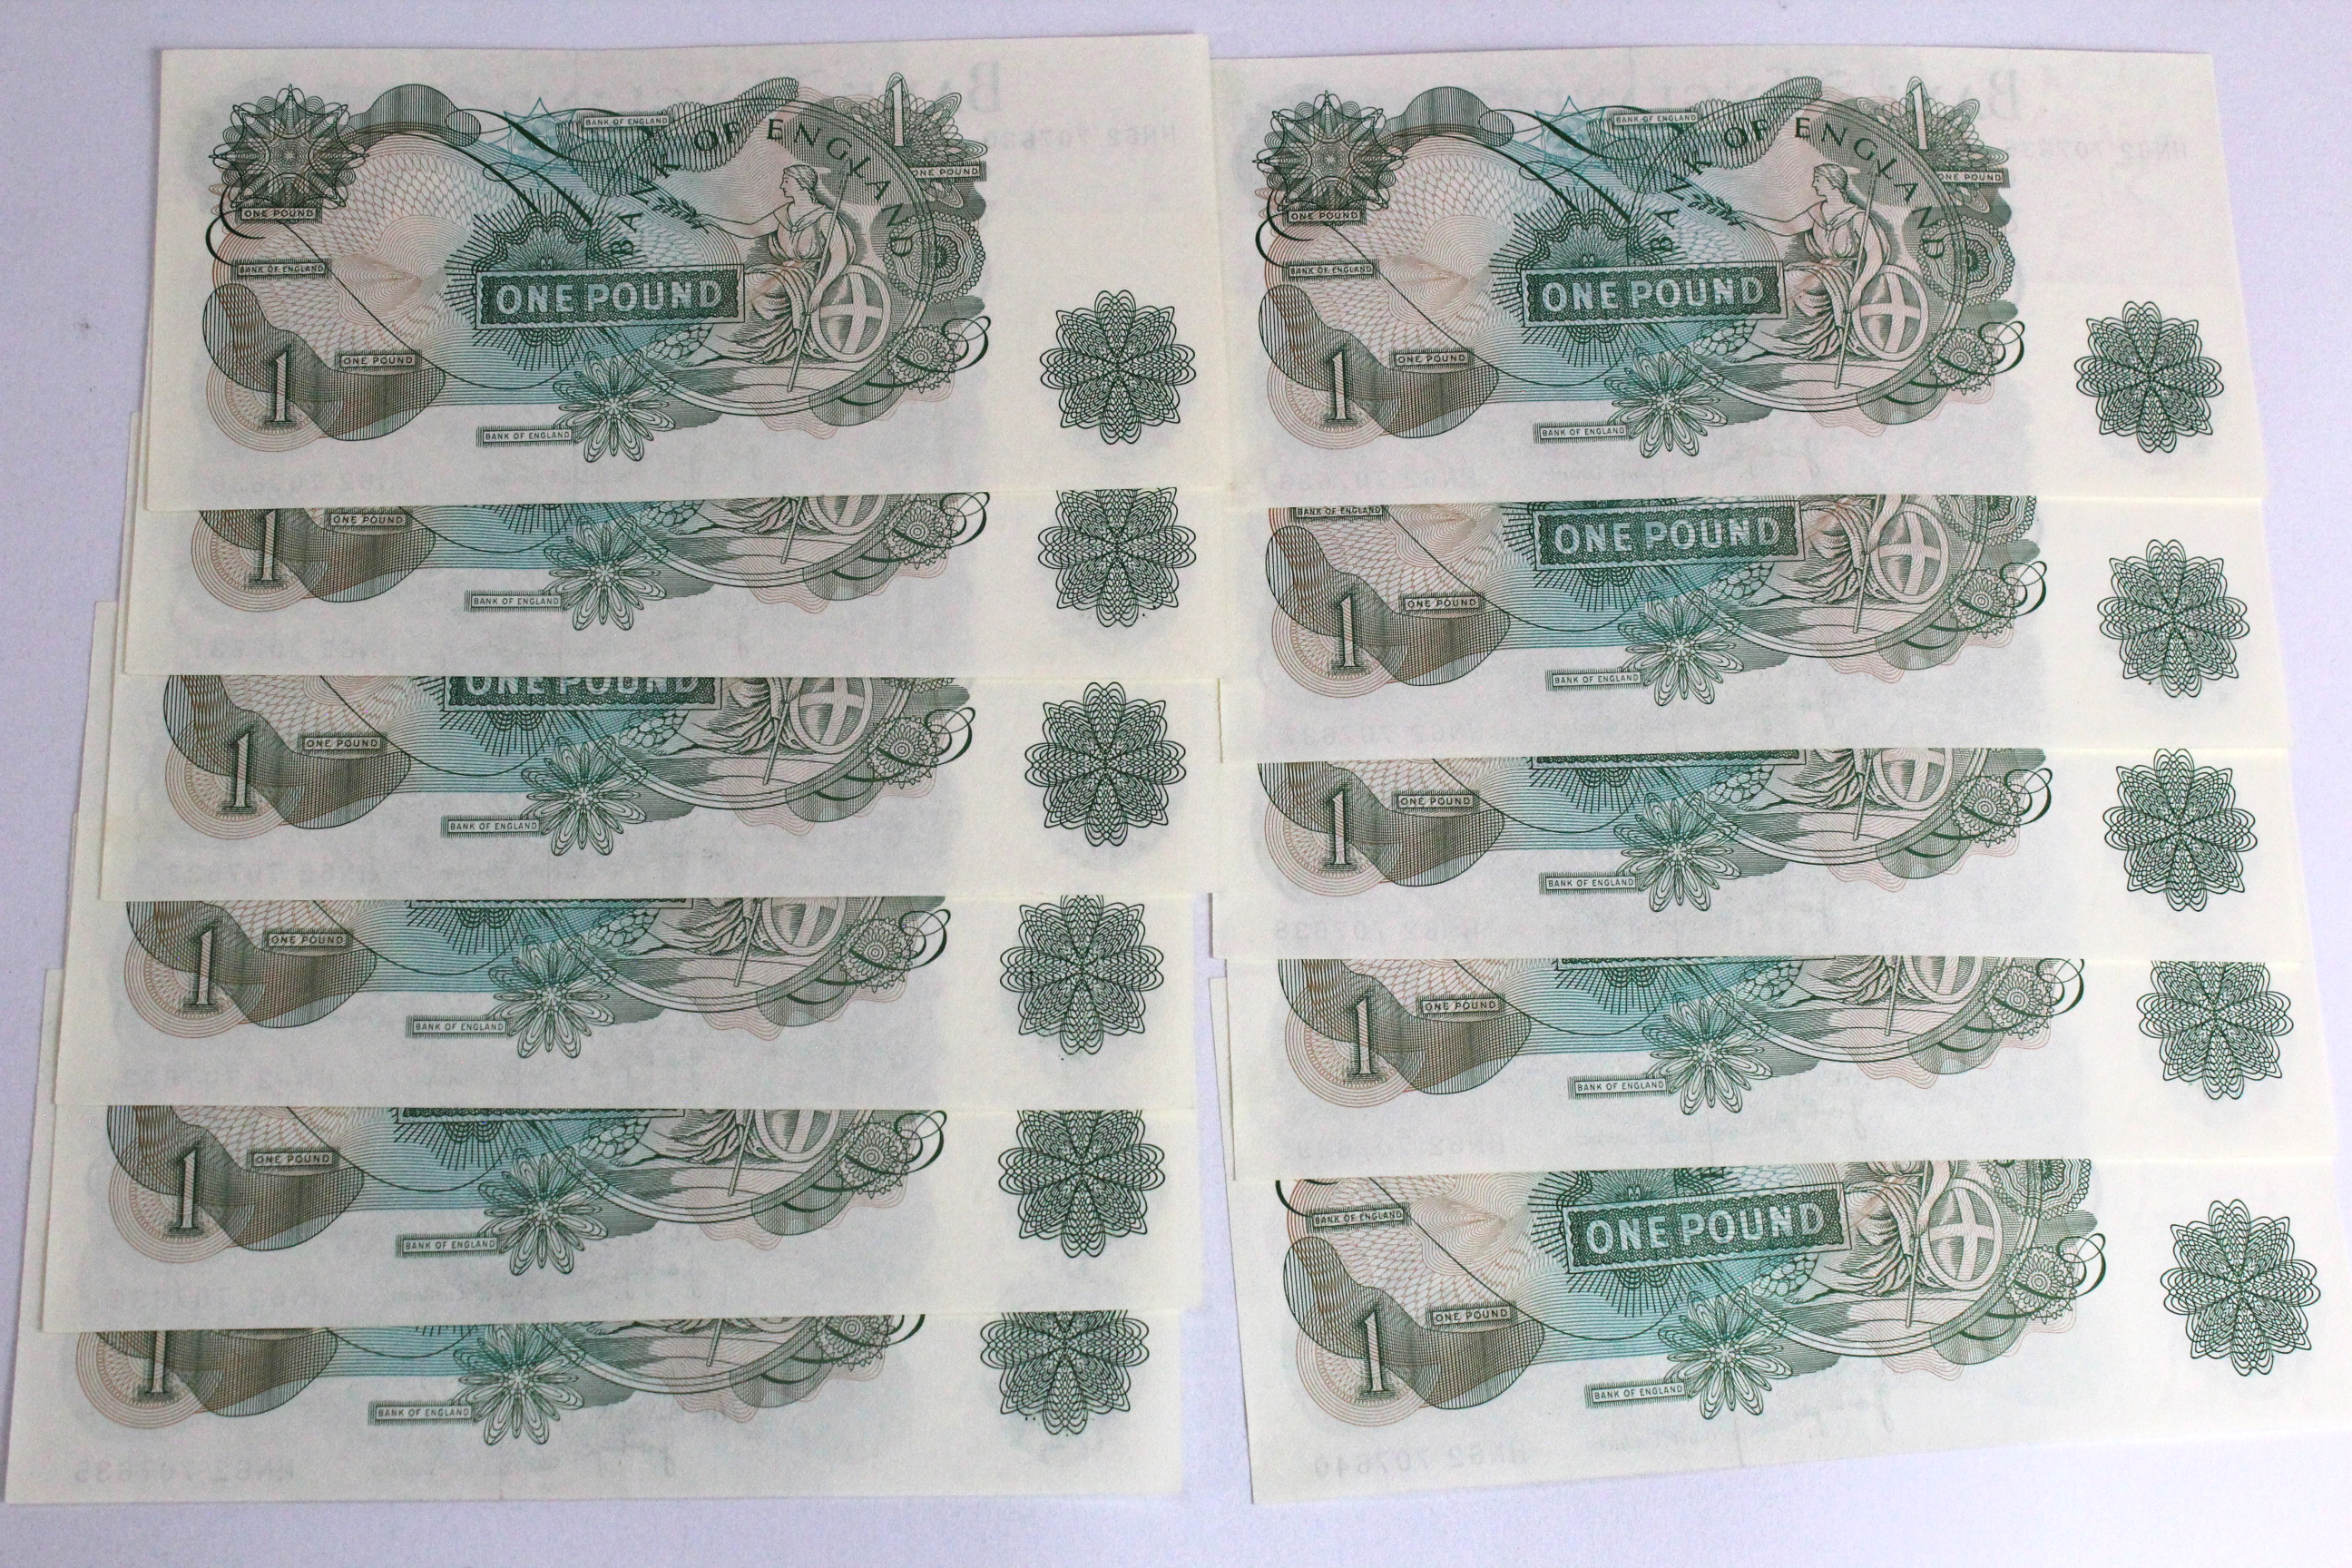 Page 1 Pound (11) issued 1970, a consecutively numbered run of 11 notes serial HN62 707630 - HN62 - Image 2 of 2